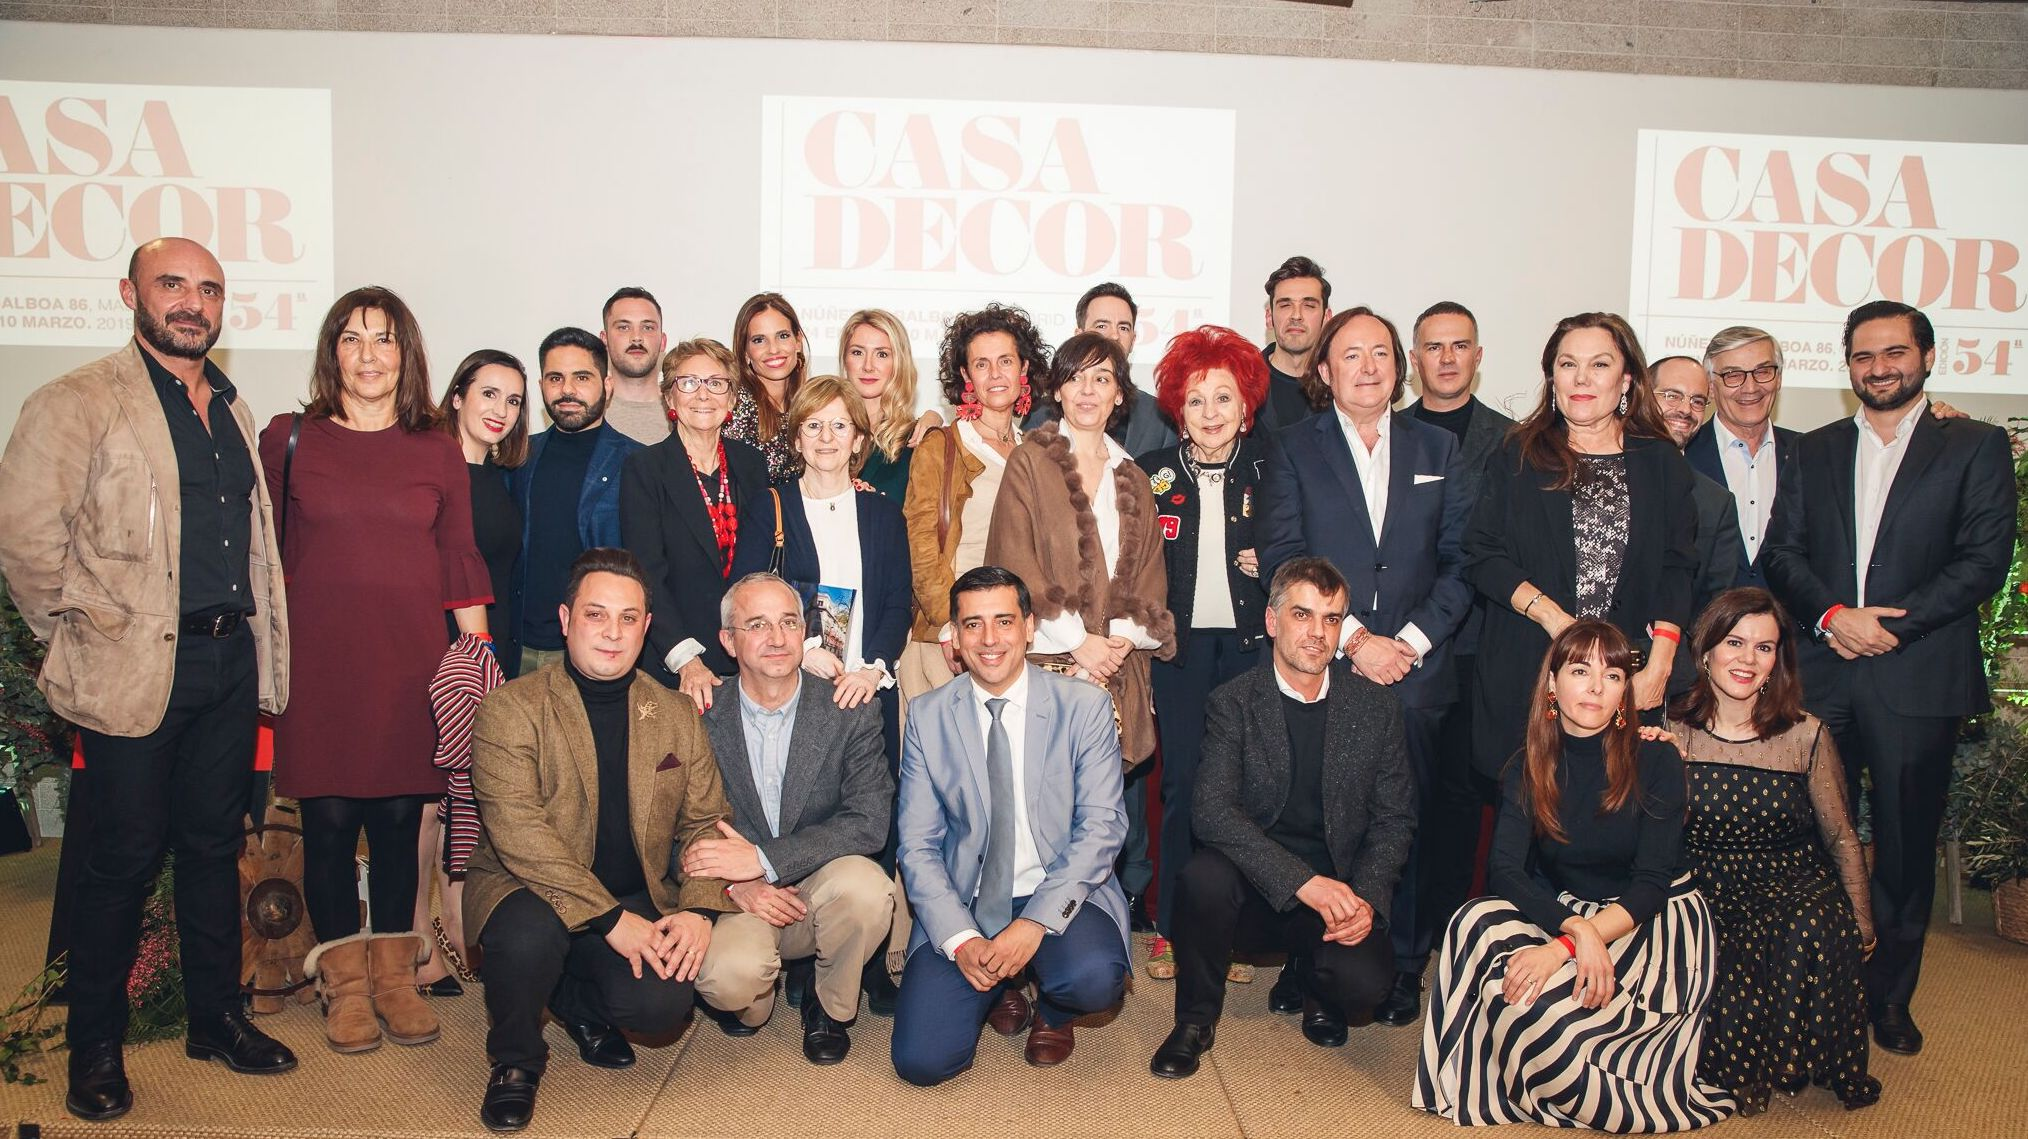 premios casa decor 2019